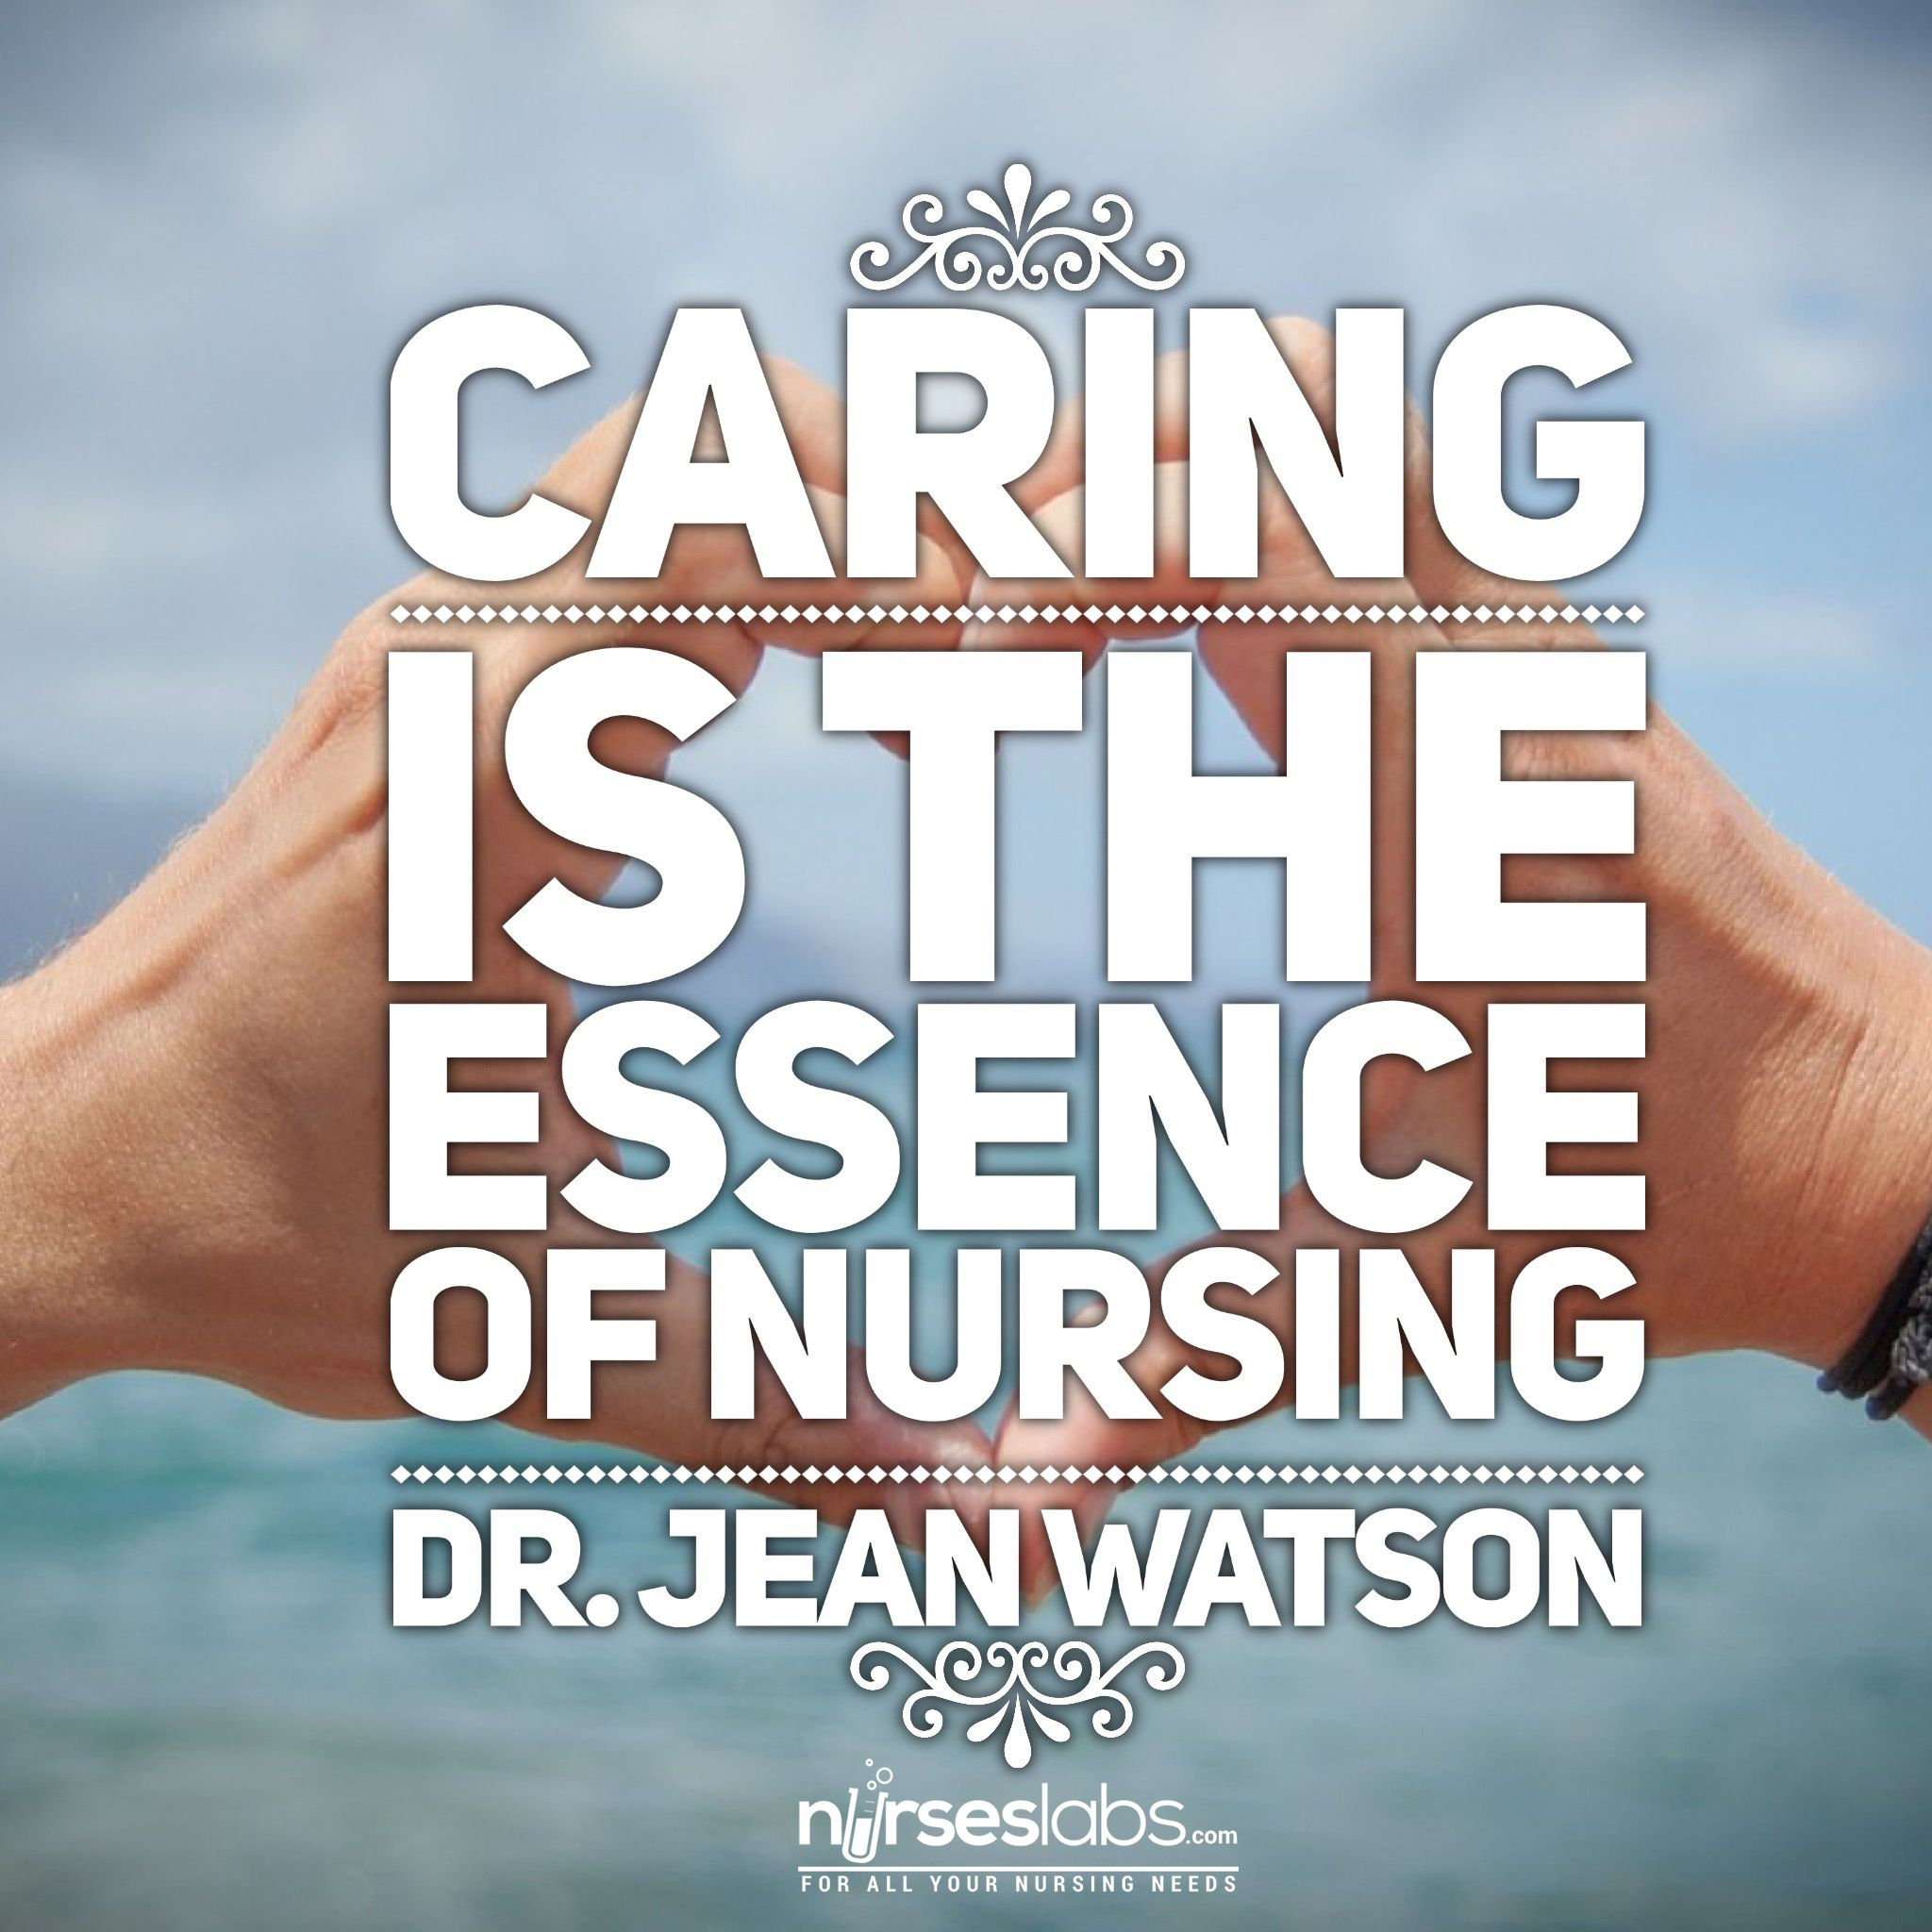 80 Nurse Quotes To Inspire Motivate And Humor Nurses Nurse Quotes Nurse Quotes Inspirational Funny Nurse Quotes